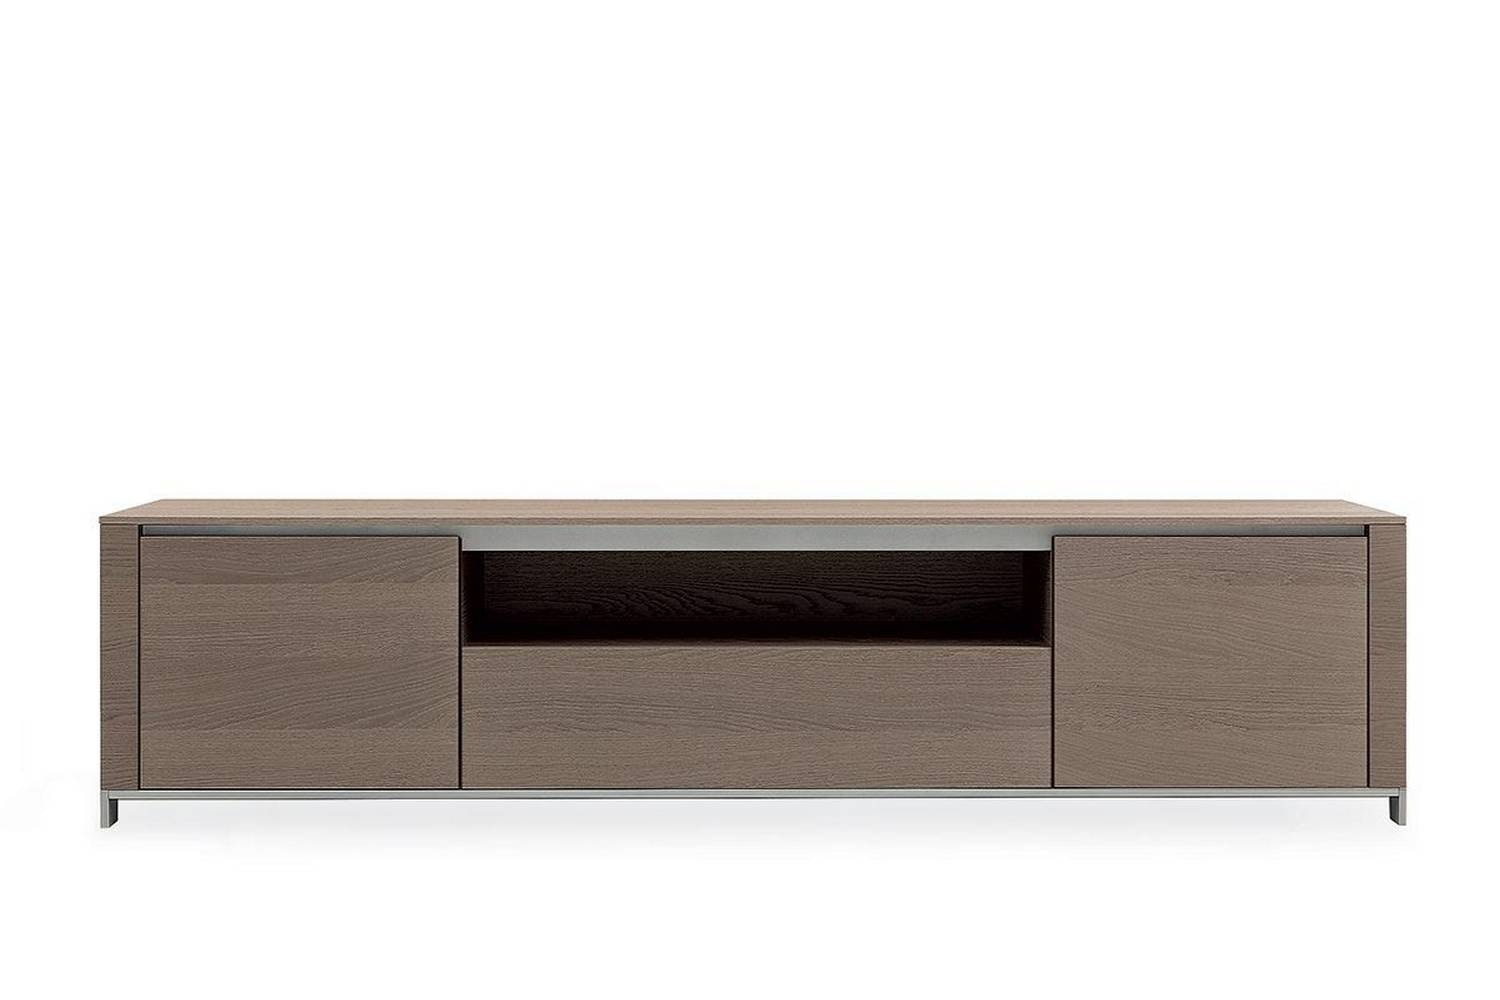 Febe Sideboard by Studio Kairos for Poliform